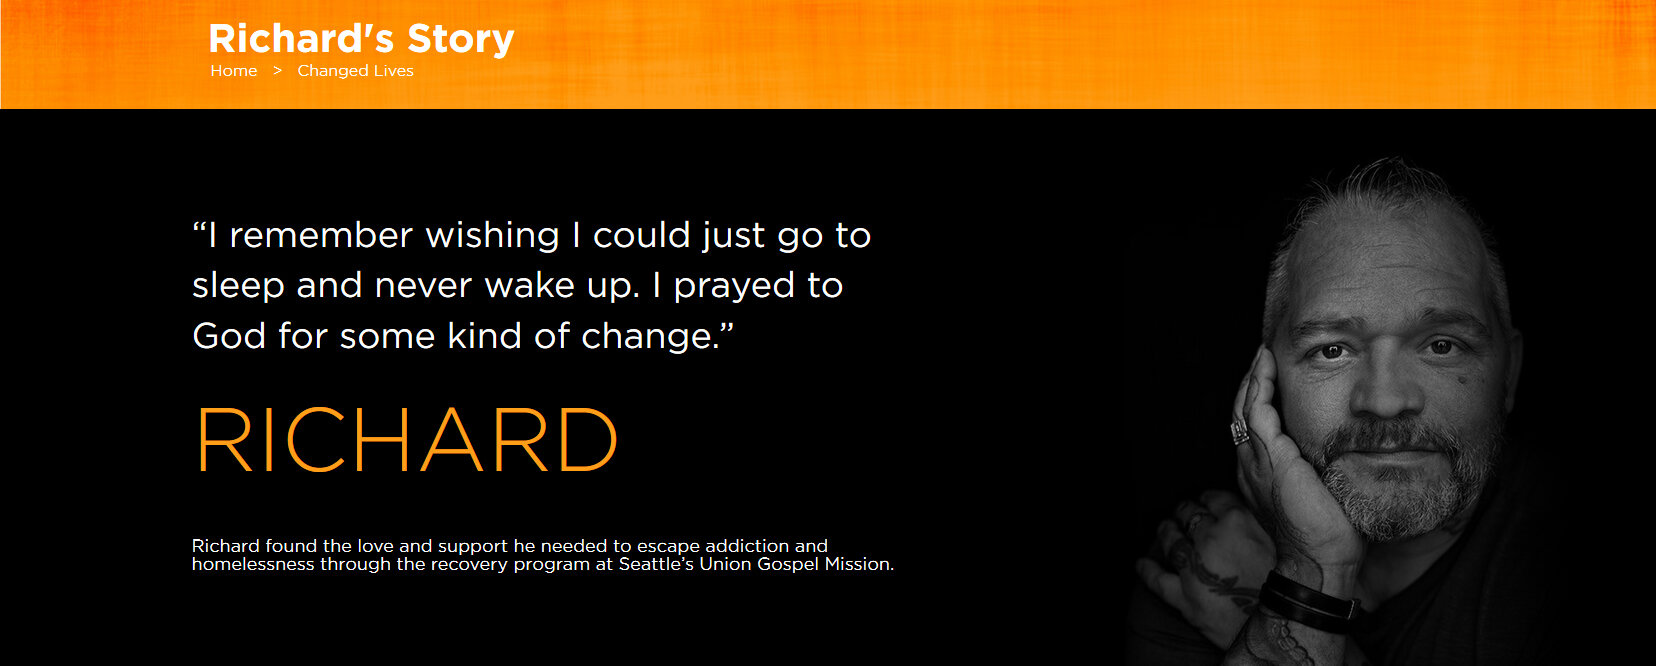 Click on the image to hear Richard's story.